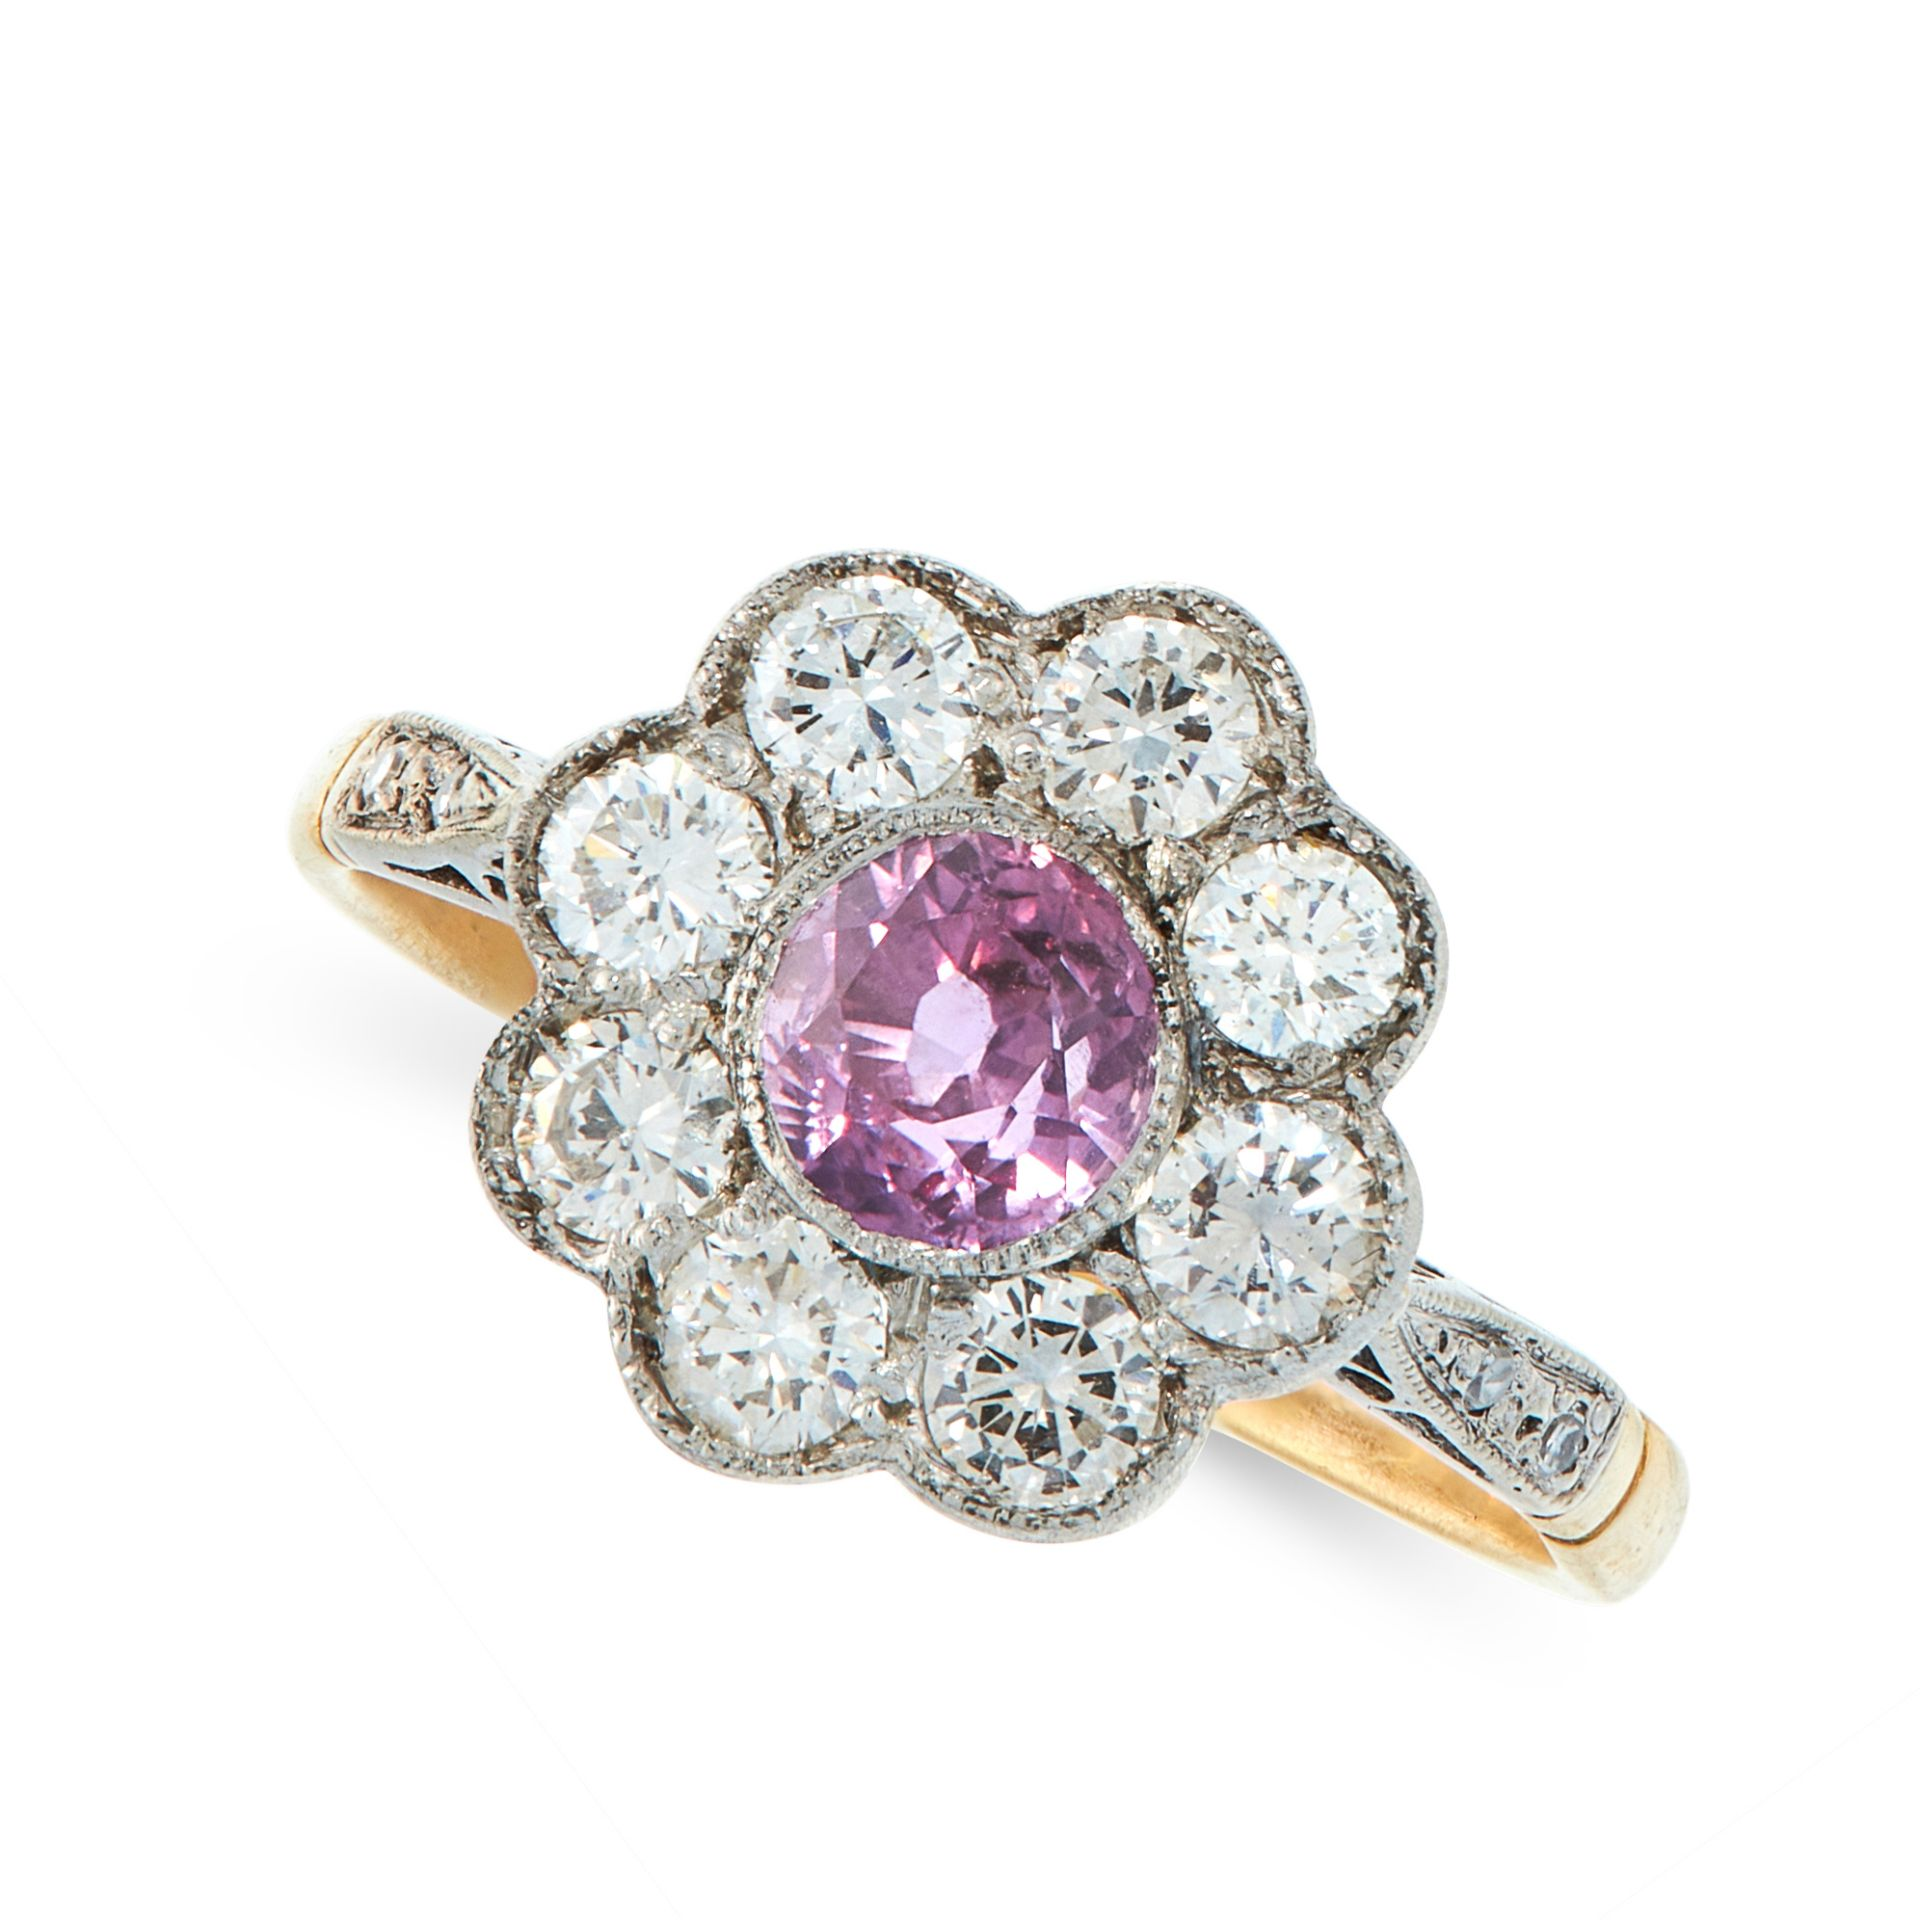 A PINK SAPPHIRE AND DIAMOND DRESS RING in 18ct yellow gold, set with a round cut pink sapphire of